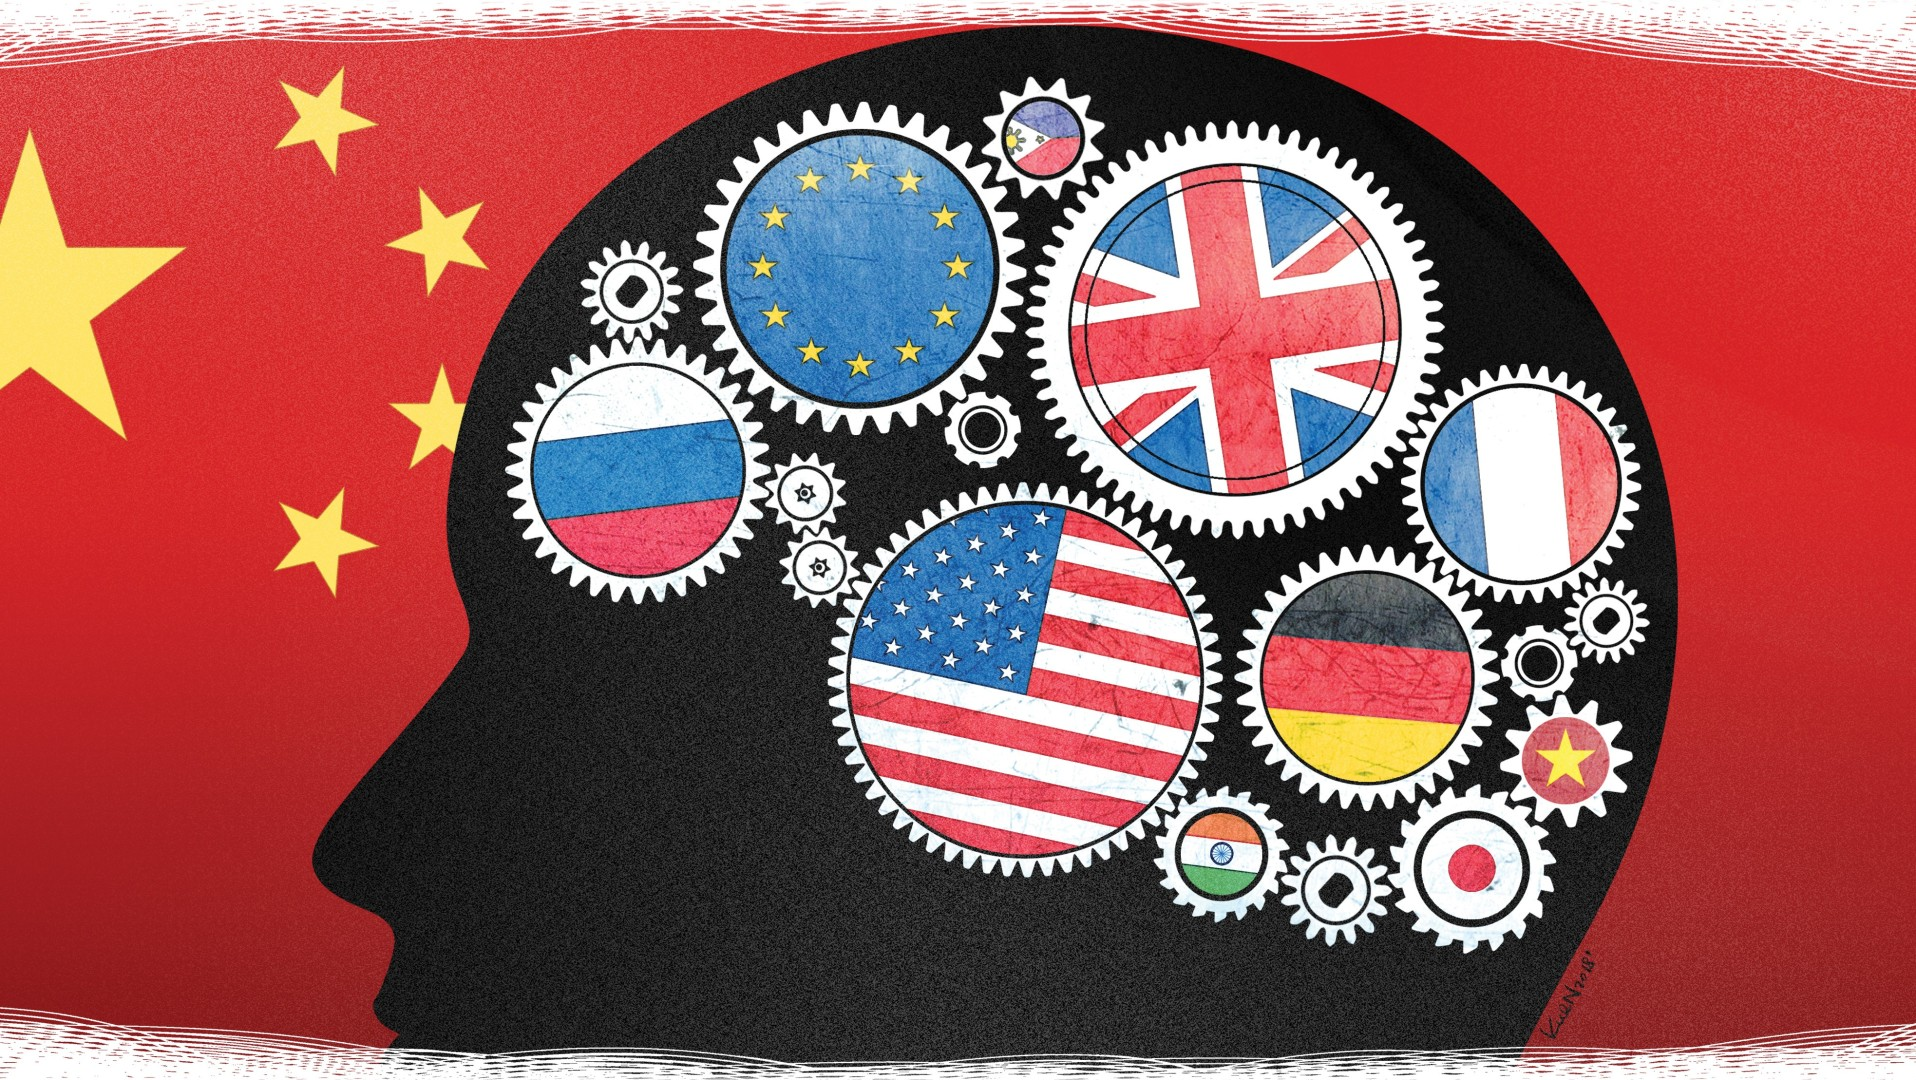 Made in China 2025': is Beijing's plan for hi-tech dominance